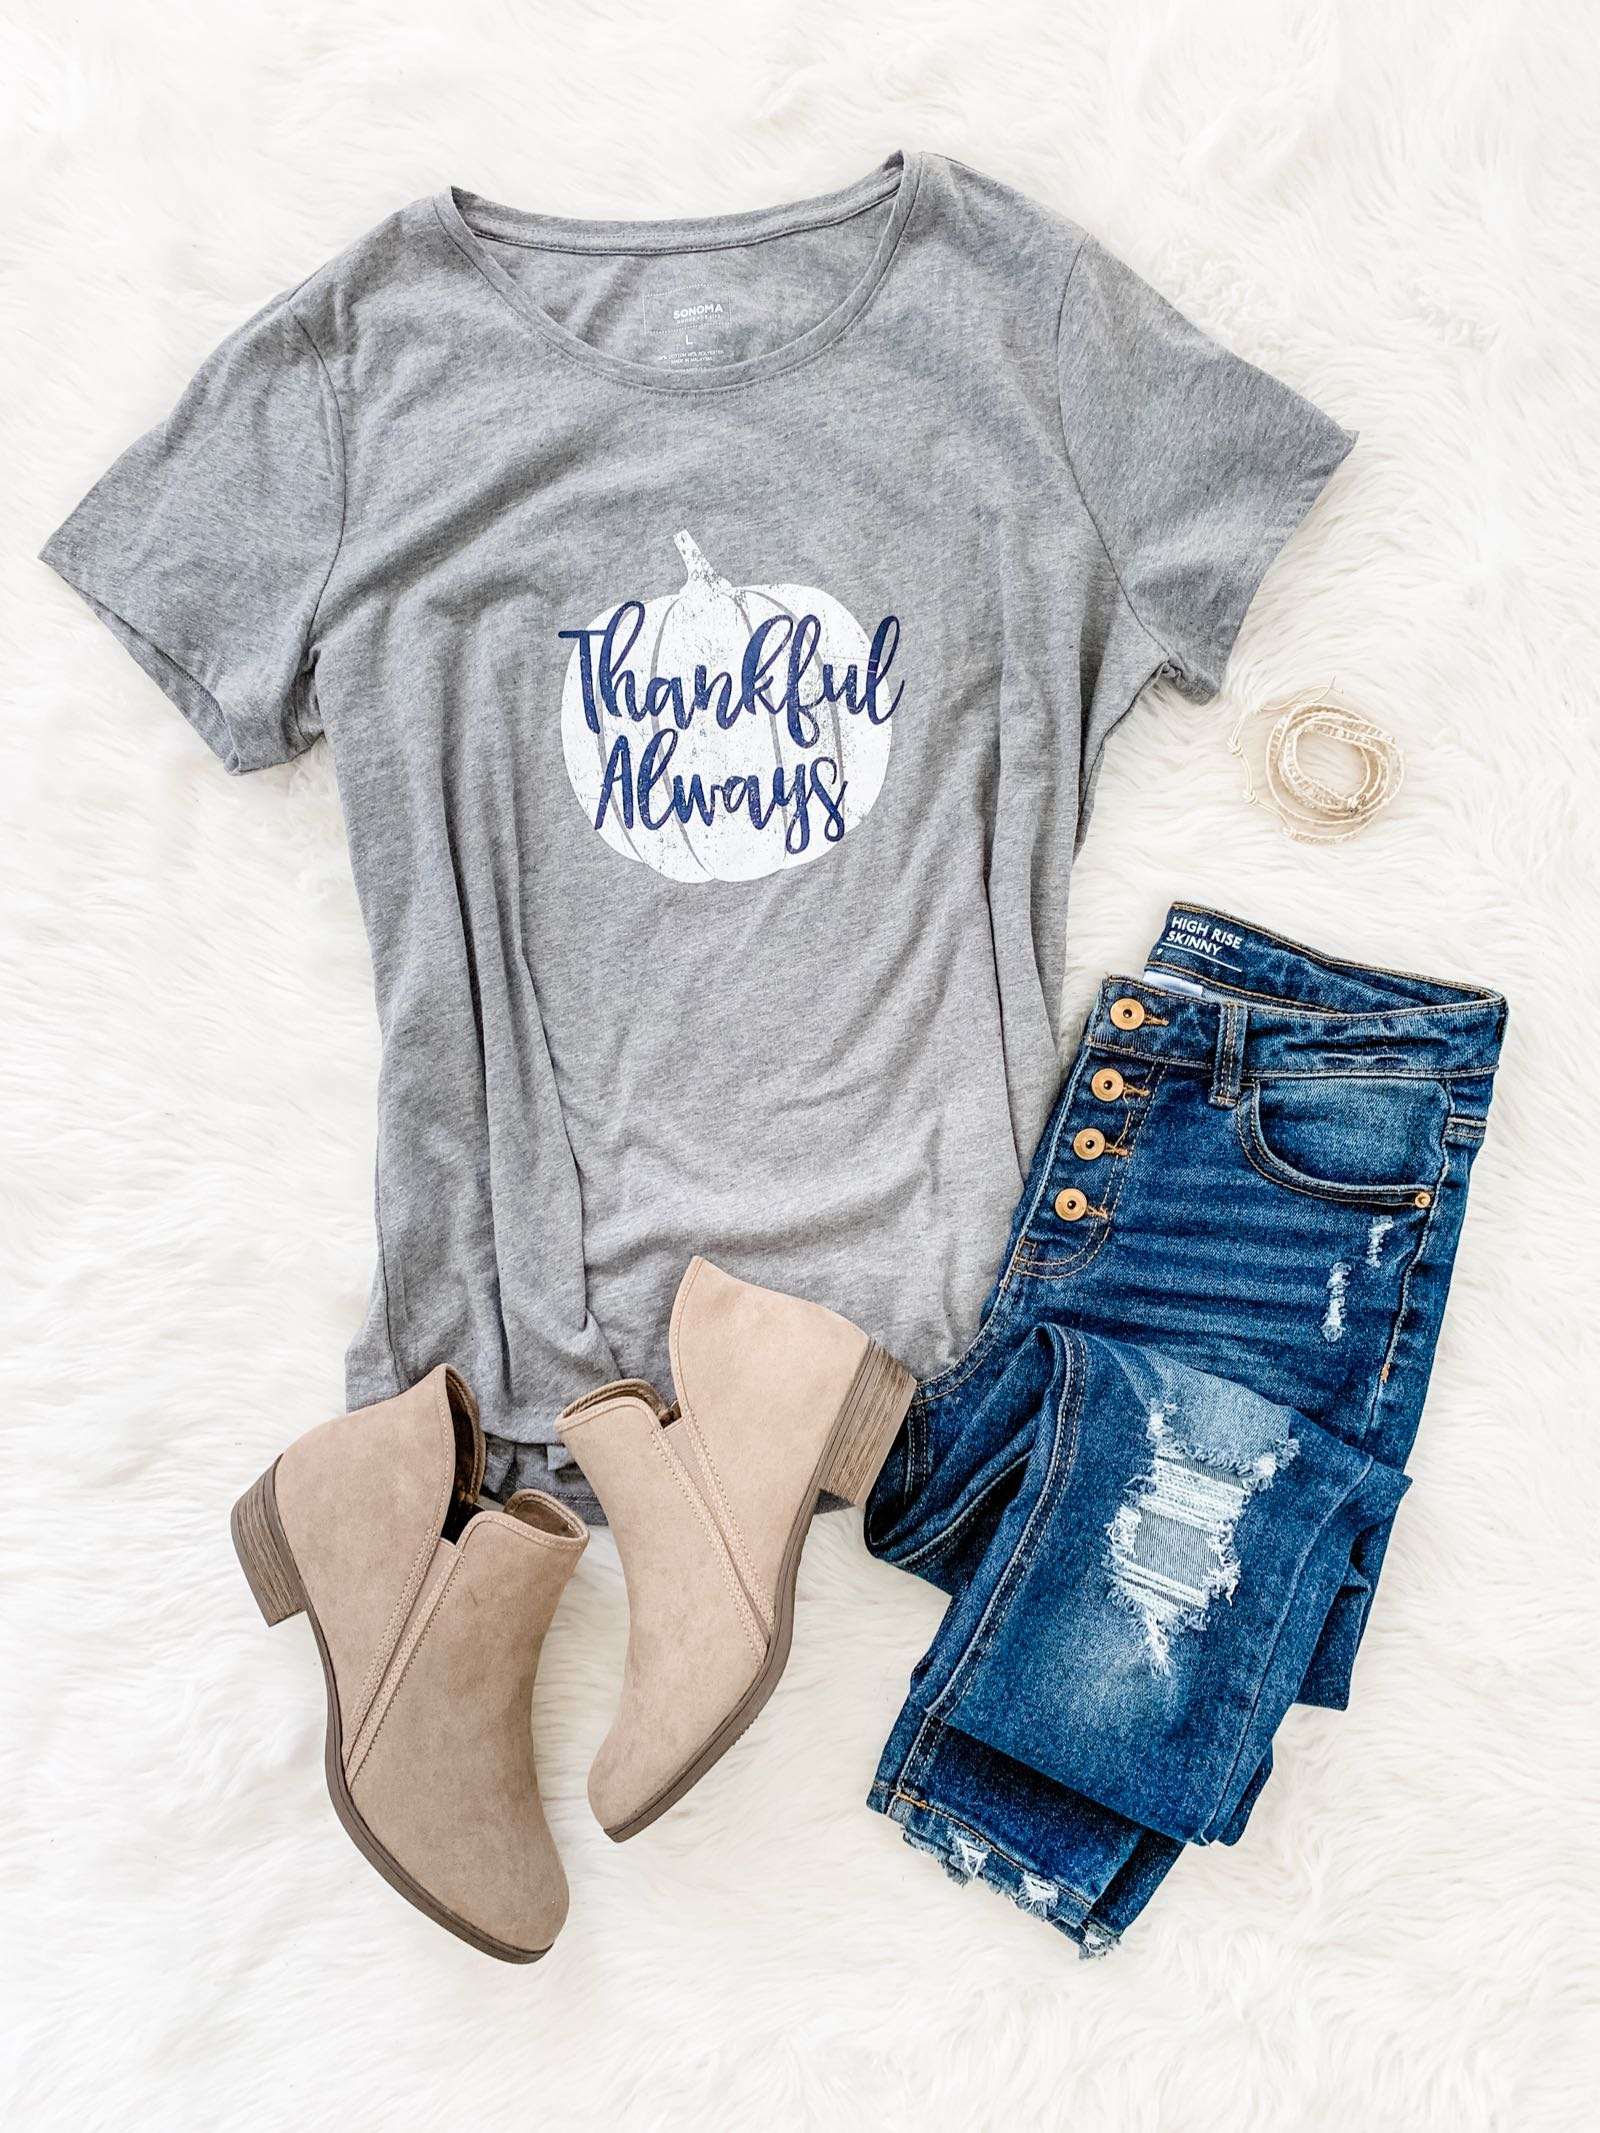 Thankful Always t-shirt and greige ankle booties outfit idea for fall